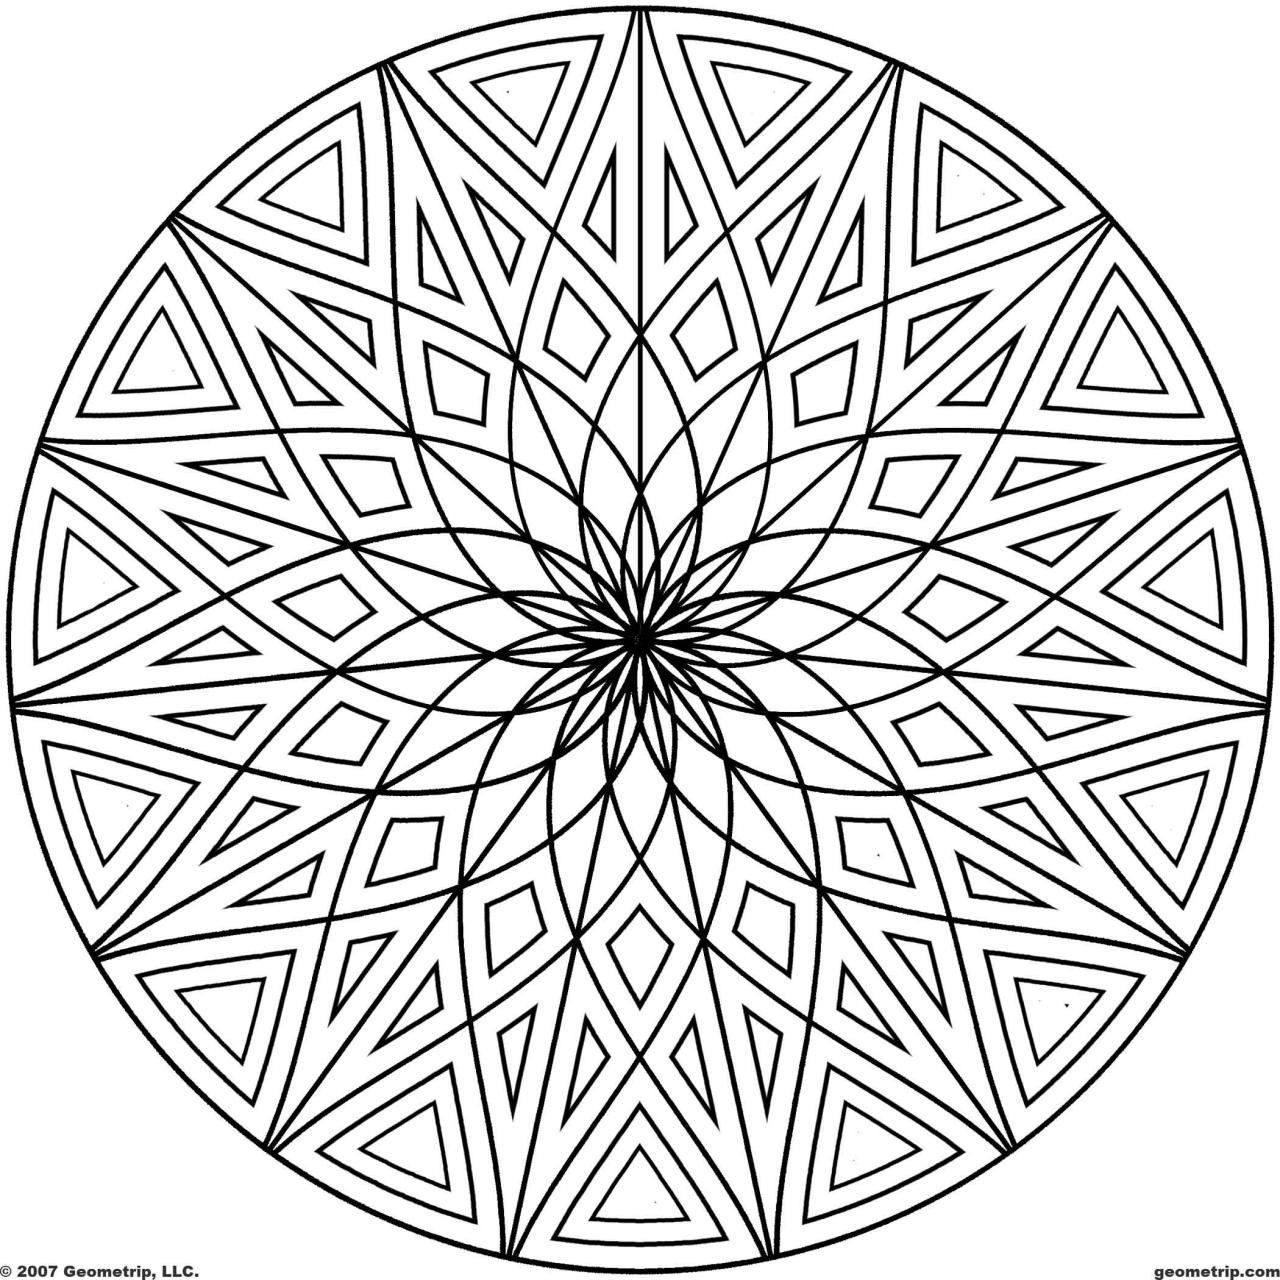 Design Coloring Pages For Kids  Cool Designs To Color Coloring Pages Coloring Page For